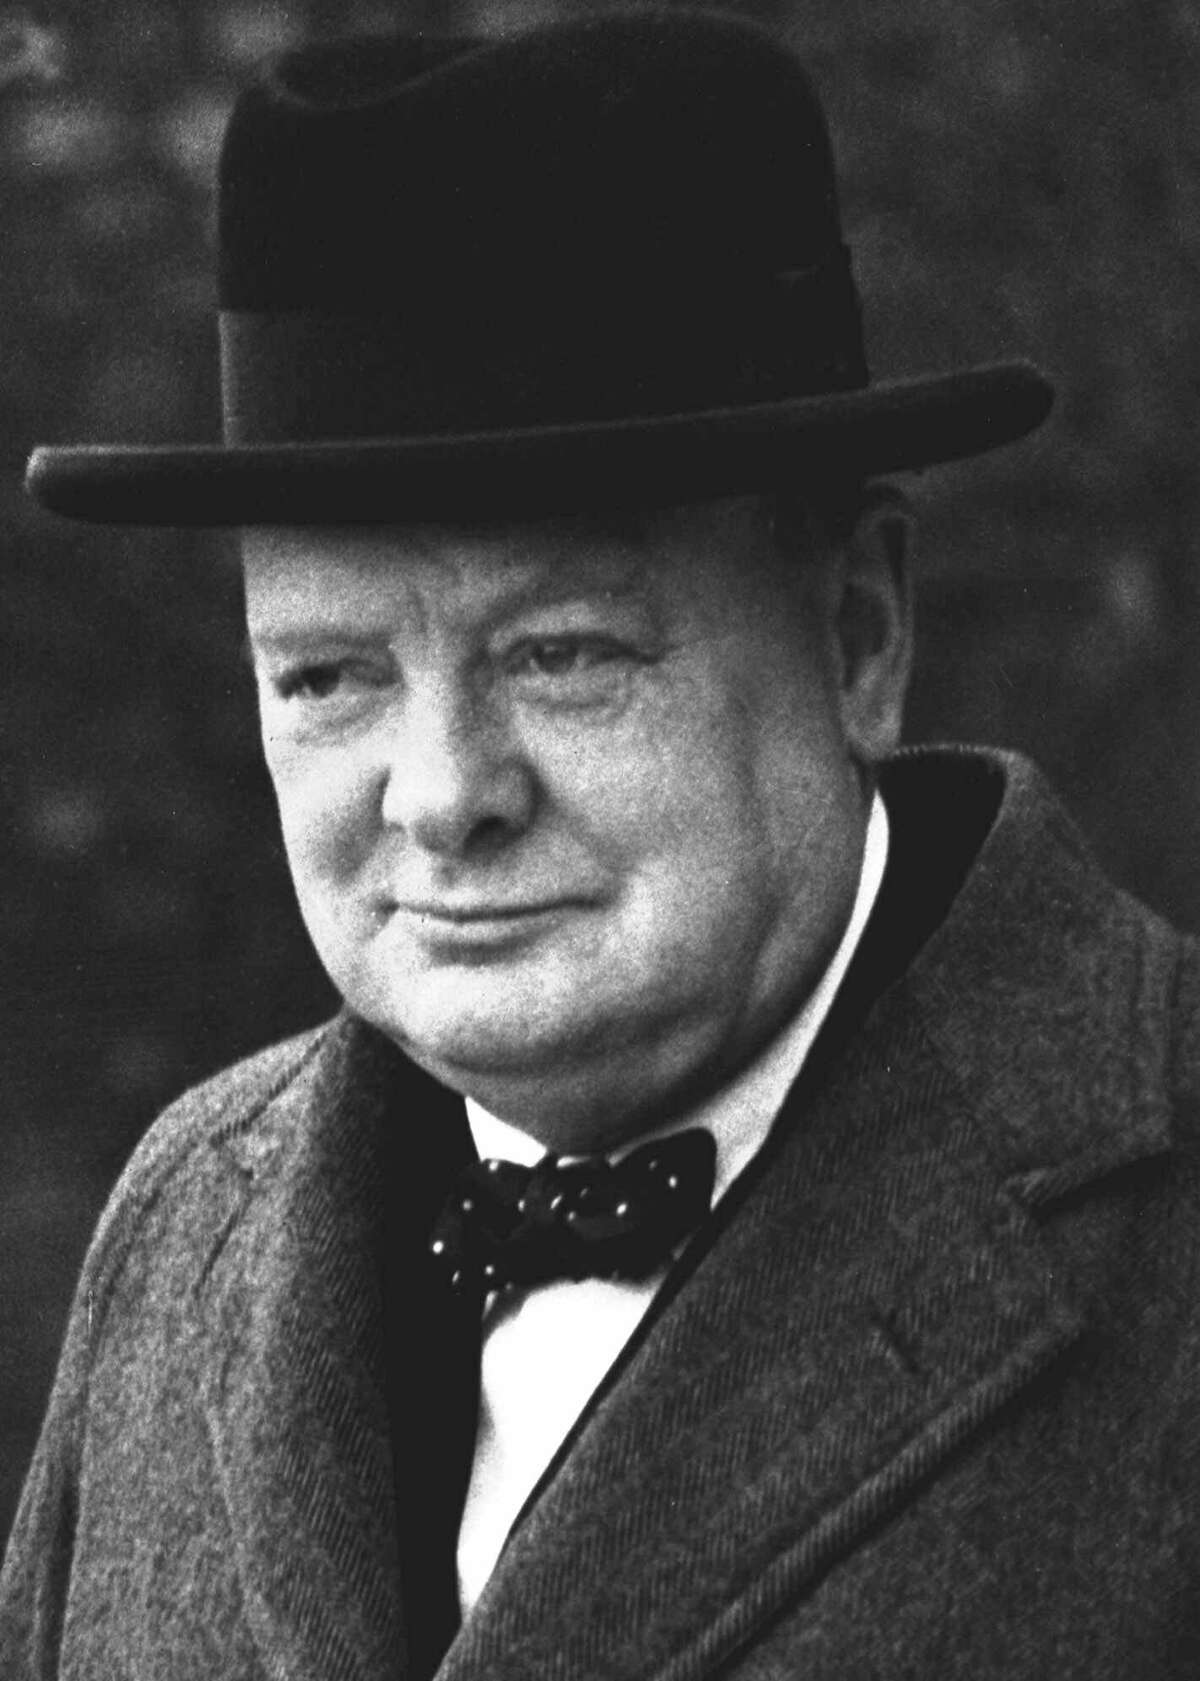 ADVANCE FOR SUNDAY, SEPT. 26--FILE--Winston Churchill is pictured in London in this March 28, 1940, file photo. On June 17, 1940, as German forces marched acoross continental Europe and the United States was still holding back from the growing conflict, the new British prime minister summoned his nation to battle Adolf Hitler. (AP Photo/FILE). HOUCHRON CAPTION (01/01/2000): No. 94: Churchill becomes prime minister, 1940. HOUCHRON CAPTION (06/05/2000): Churchill in 1940. HOUCHRON CAPTION (06/27/2000): Winston Churchill was among British officials who received intercepted intelligence messages. HOUCHRON CAPTION (12/03/2000): Winston Churchill is regarded by most Americans as a great statesman. But his own countrymen are harder to convince. HOUCHRON CAPTION (11/28/2001)(07/21/2002)(12/26/2002)(06/18/2004): Churchill. ON two / LOOKING BACK. HOUCHRON CAPTION (02/06/2005-2-STAR) SECNEWS: COLOSSUS: Winston Churchill's strength during World War II overrode his past mistakes.